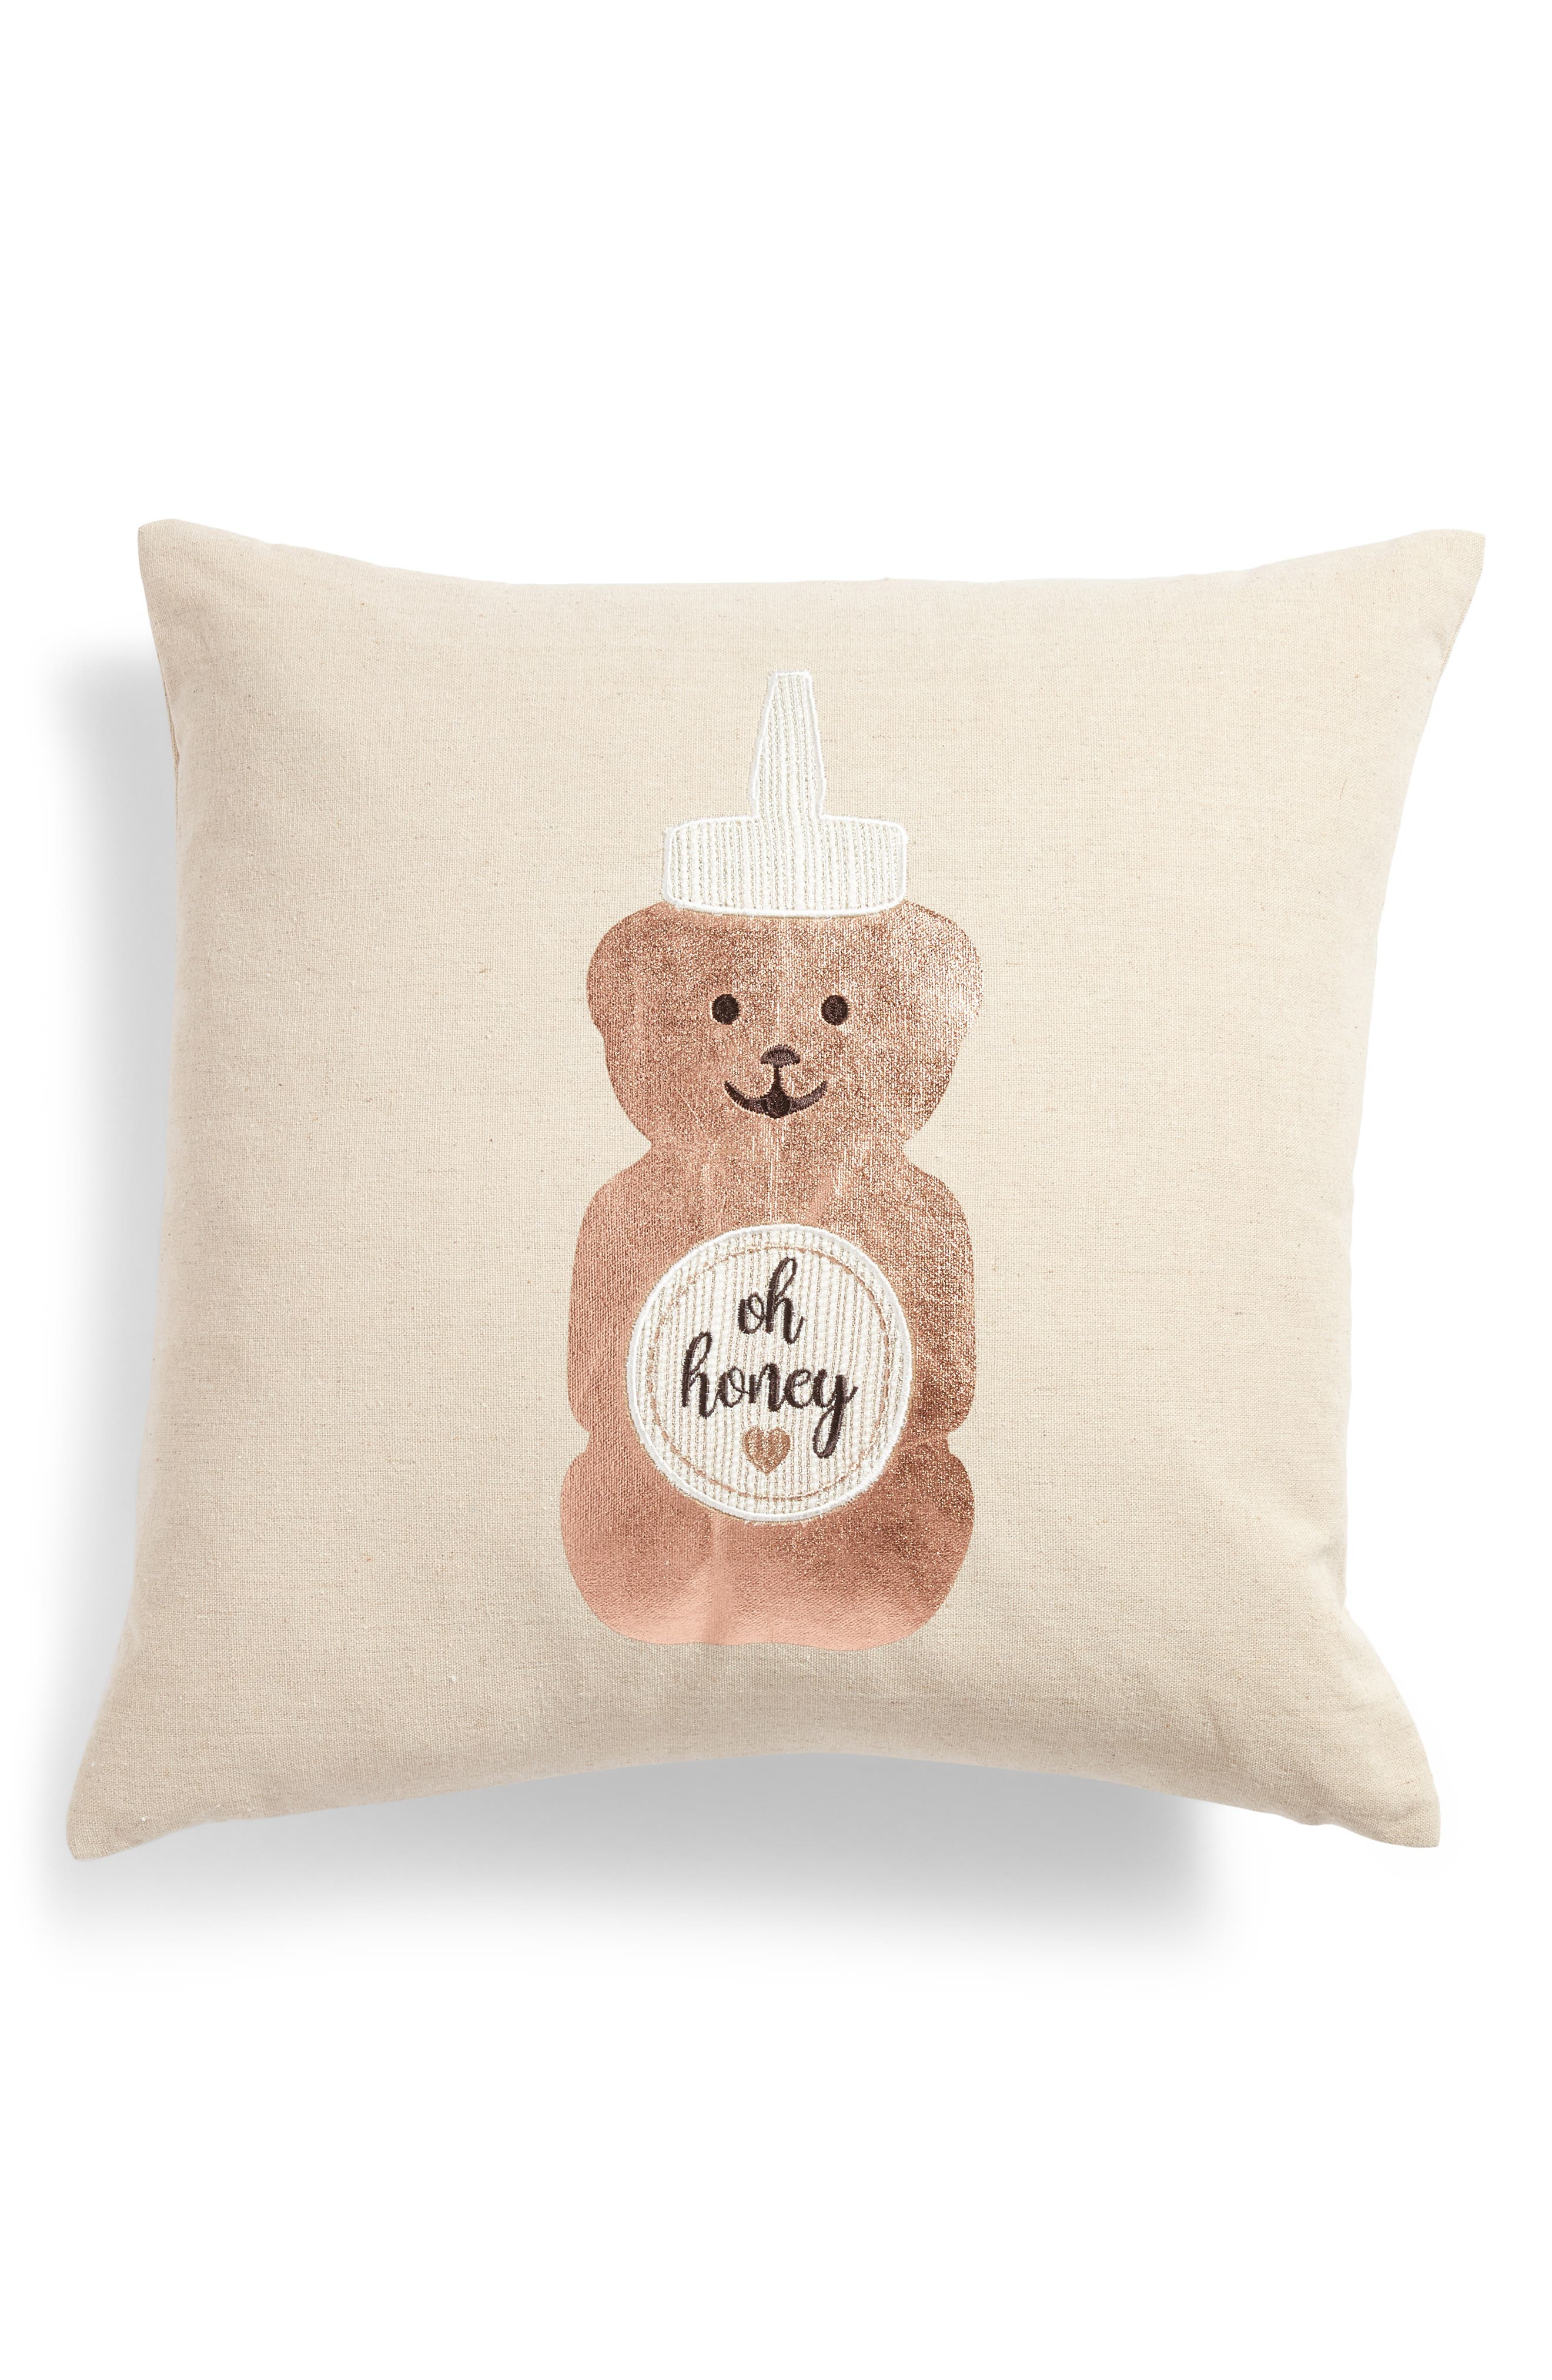 Oh Honey Accent Pillow,                             Main thumbnail 1, color,                             Grey